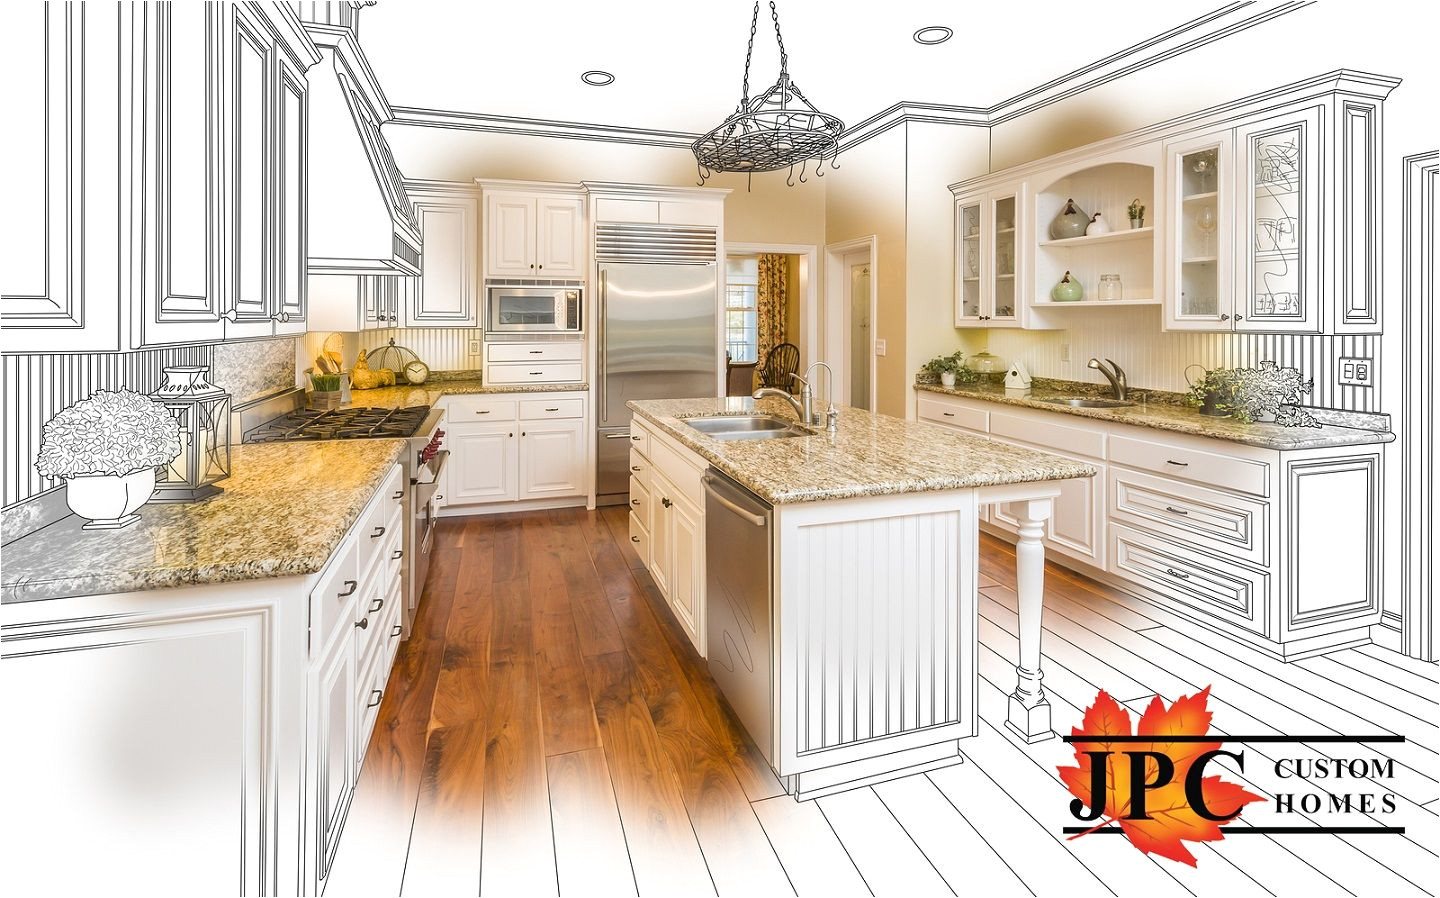 hire our affordable bathroom remodeling experts in the springfield mo area do not hesitate turn to rj s complete home services at